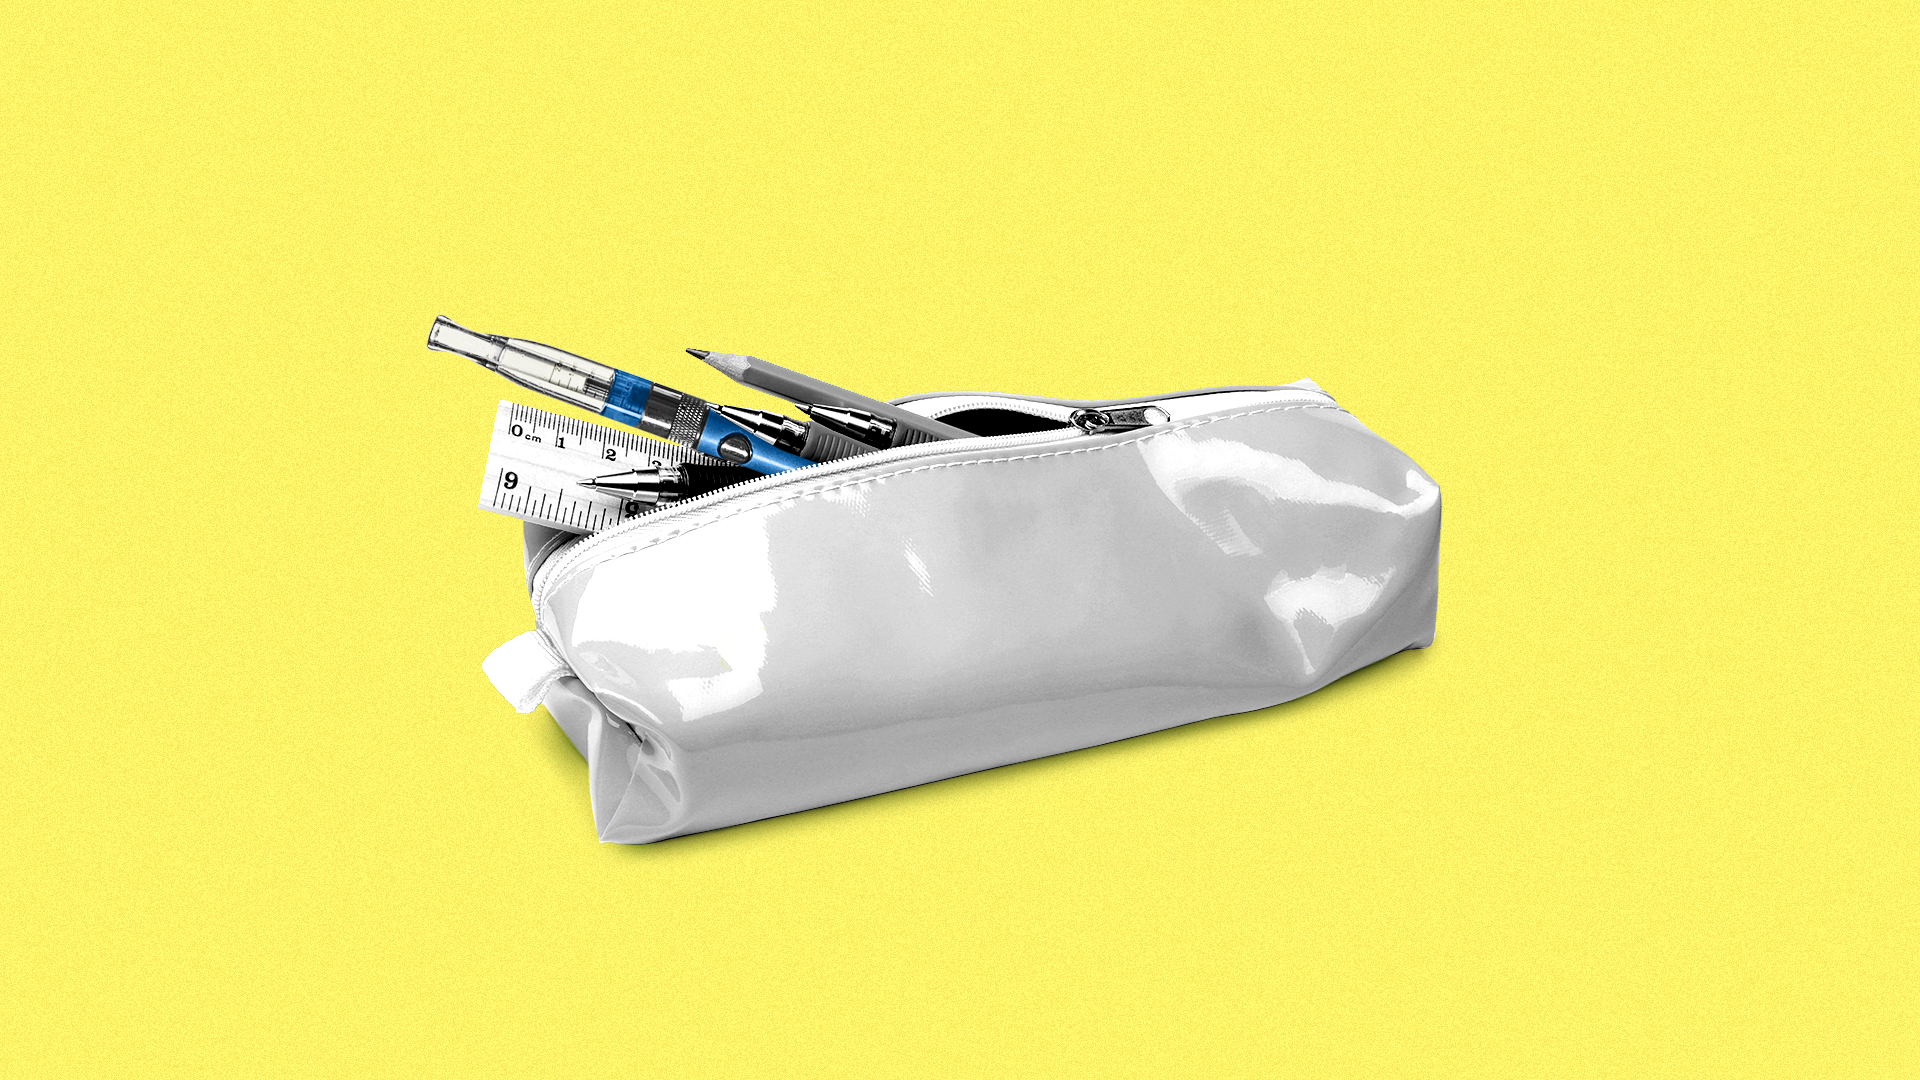 Illustration of pencil case holding tobacco products